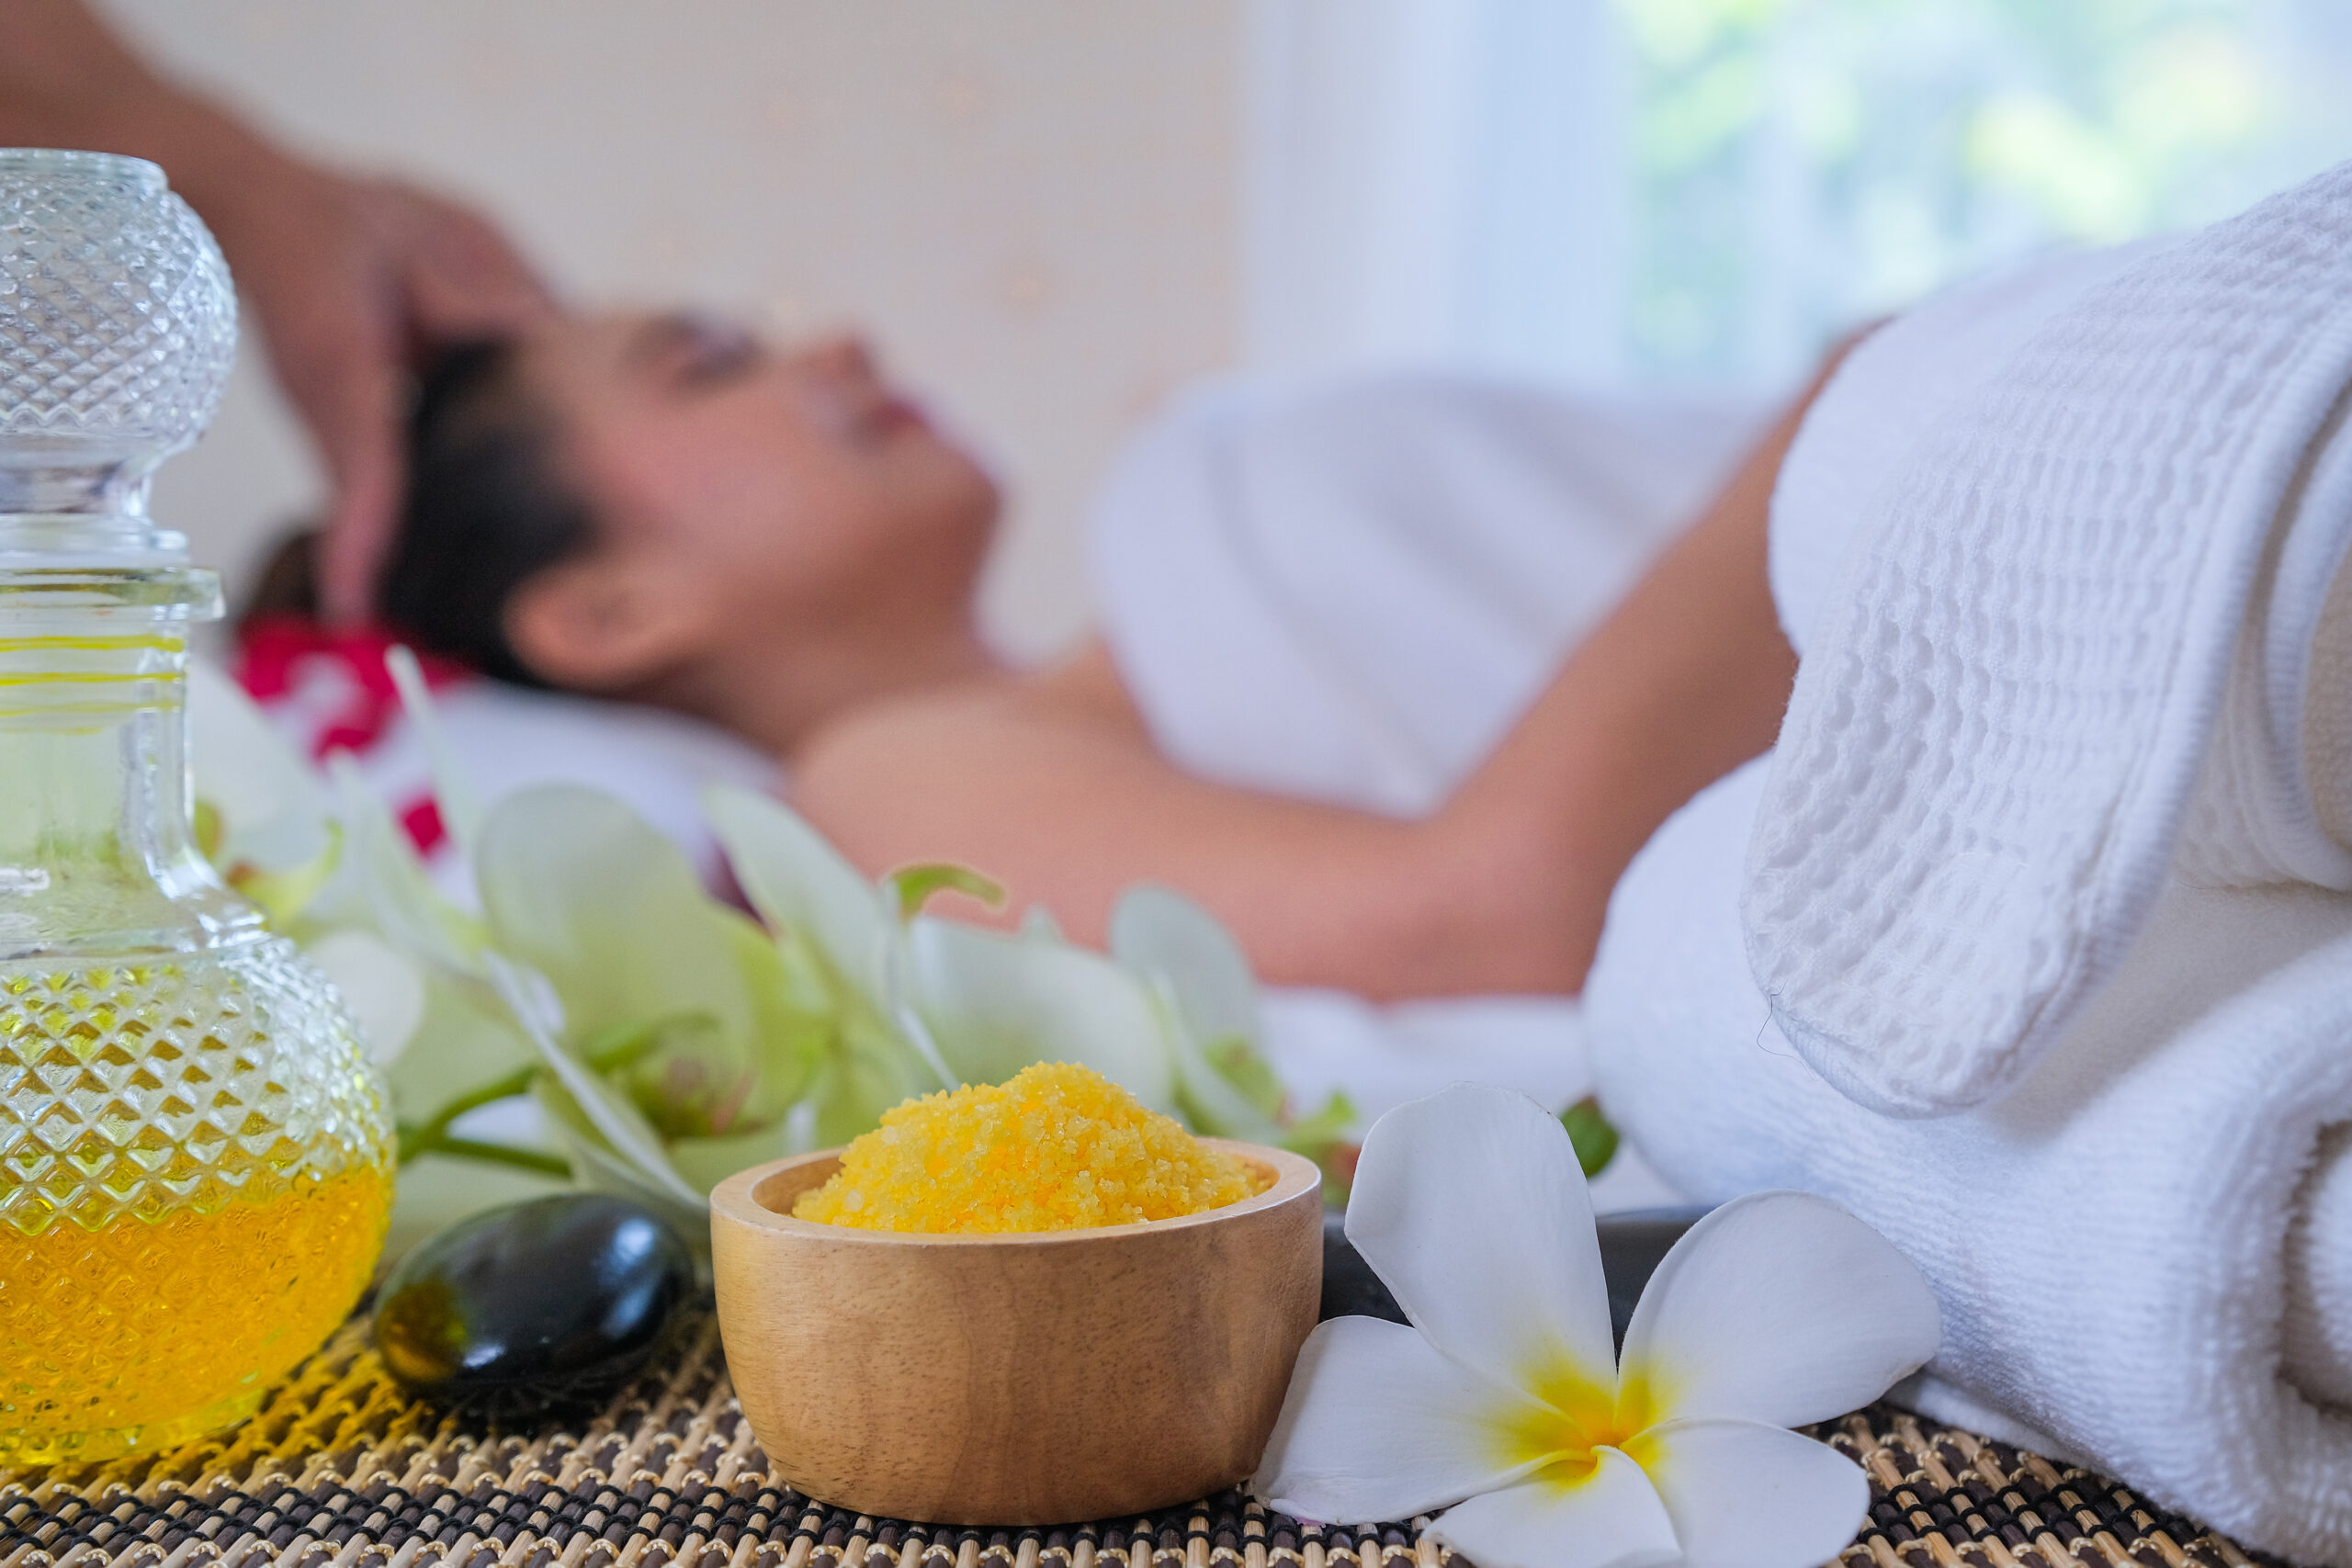 Spa Treatment Set Aromatic Massage Oil Bed Massage Thai Setting Aroma Therapy Massage With Flower Bed Relax Healthy Care Scaled